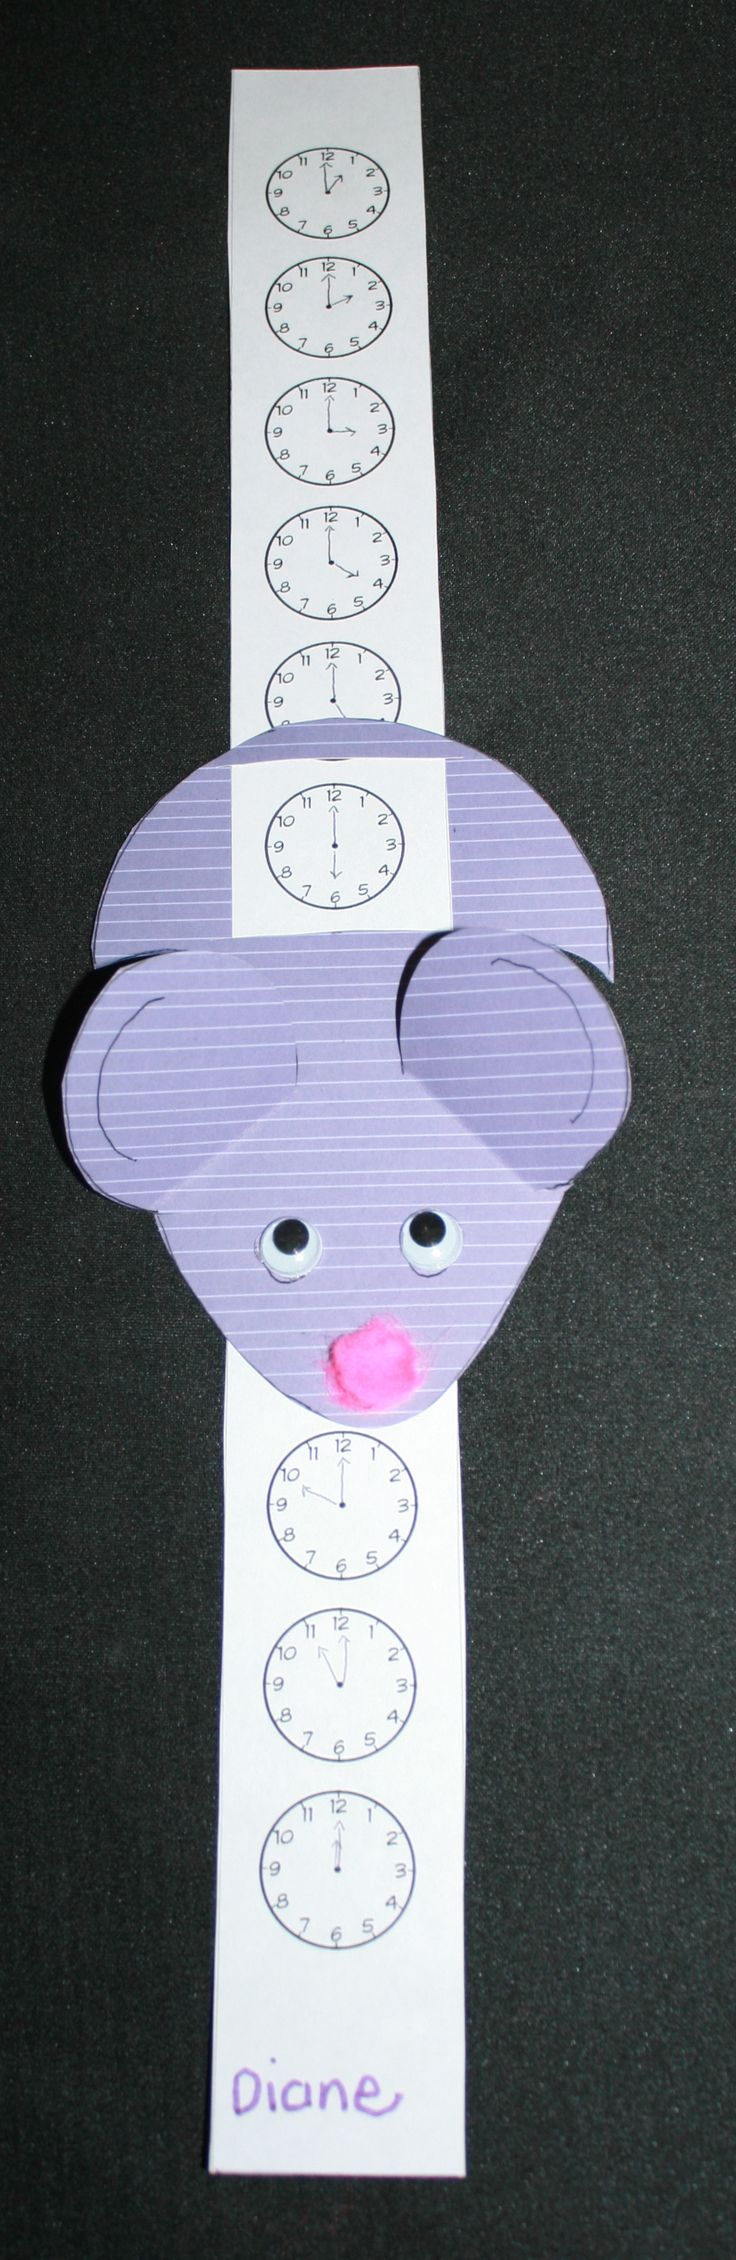 Hickory Dickory Clock Mouse slider. Reinforces time to the hour. Students draw hands on from 1-12. Great way to whole-group assess. Free